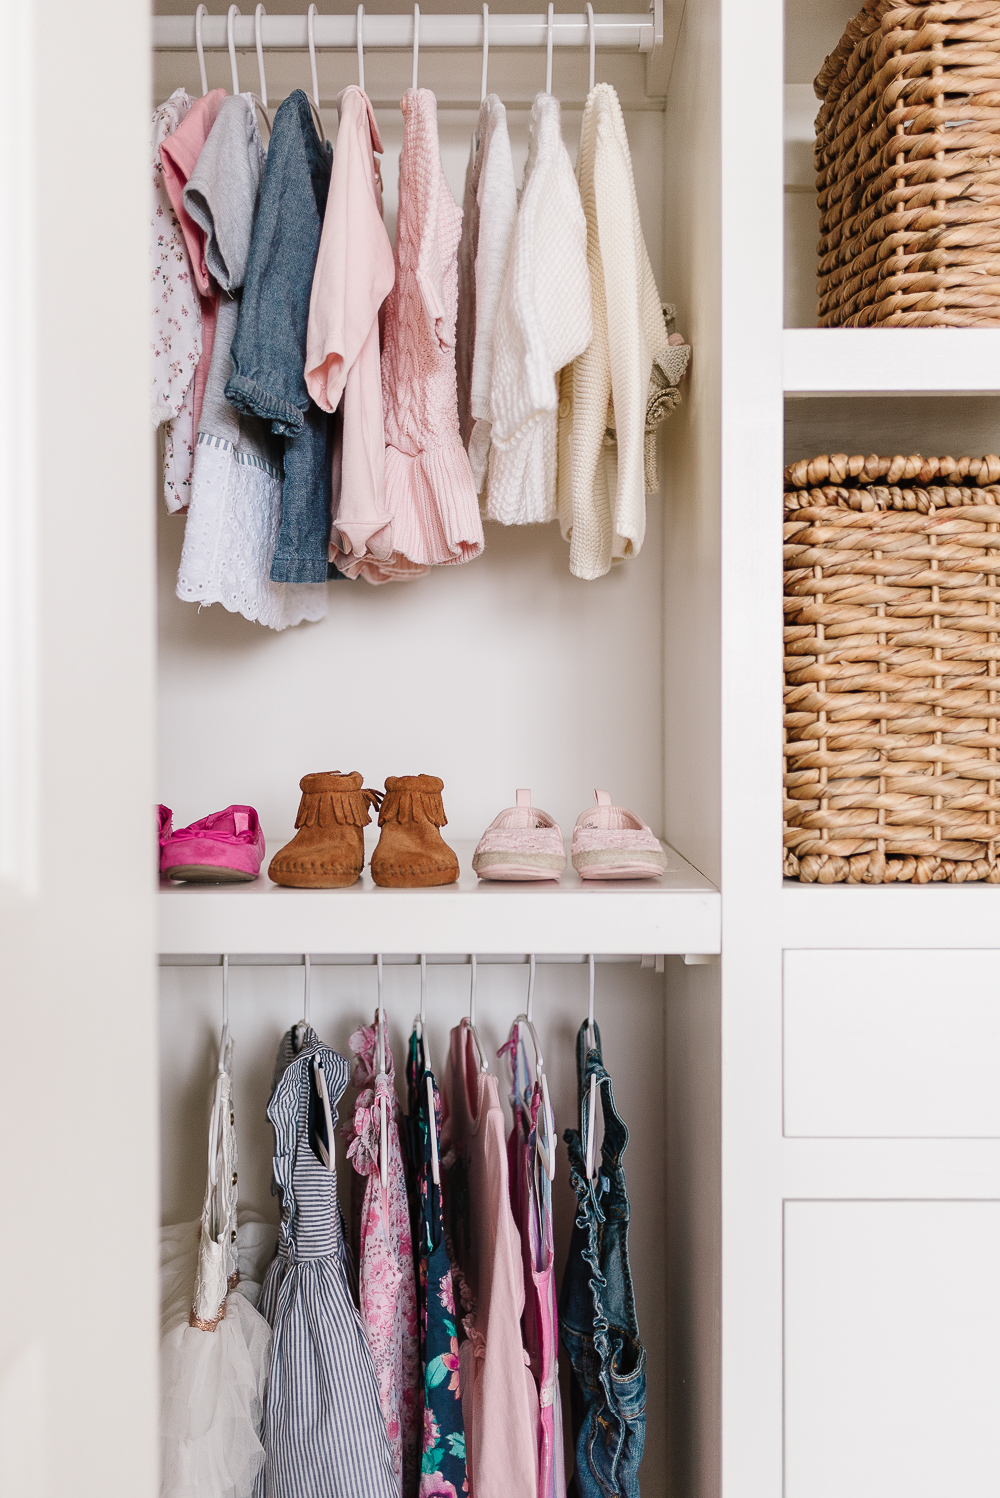 Closet organization system diy built-ins